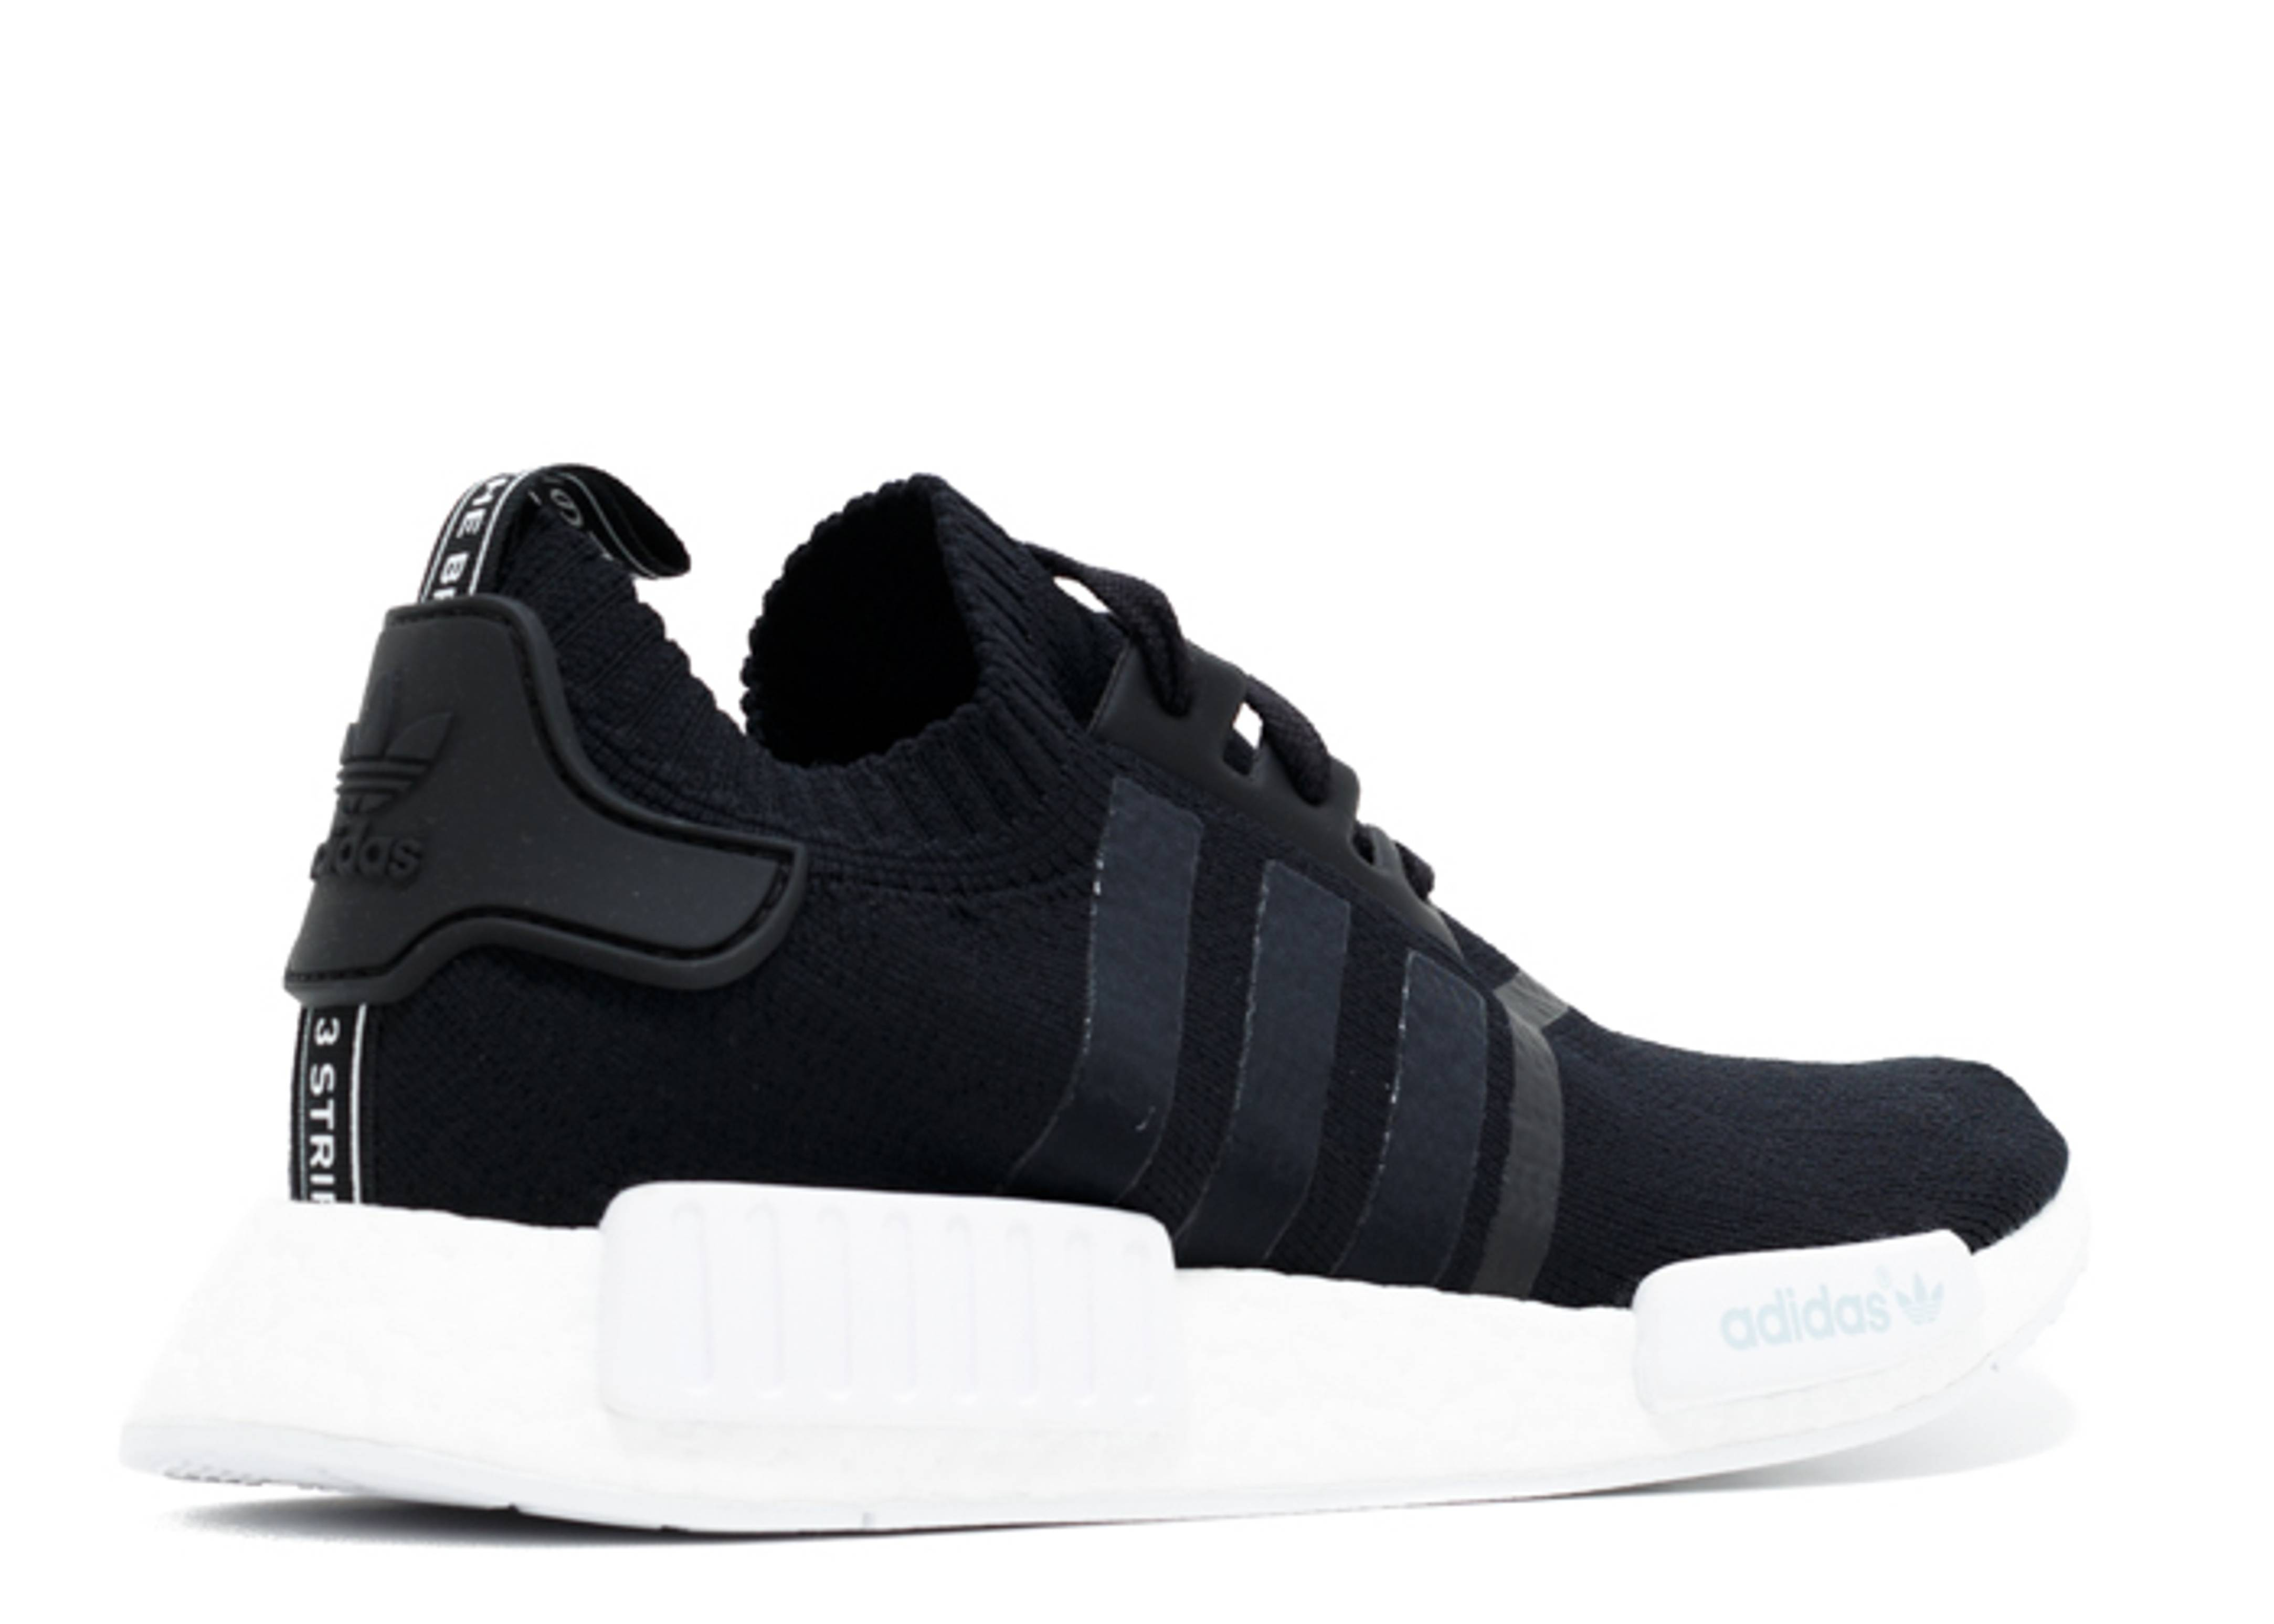 a72852485850 Adidas Nmd R1 Monochrome Black kenmore-cleaning.co.uk